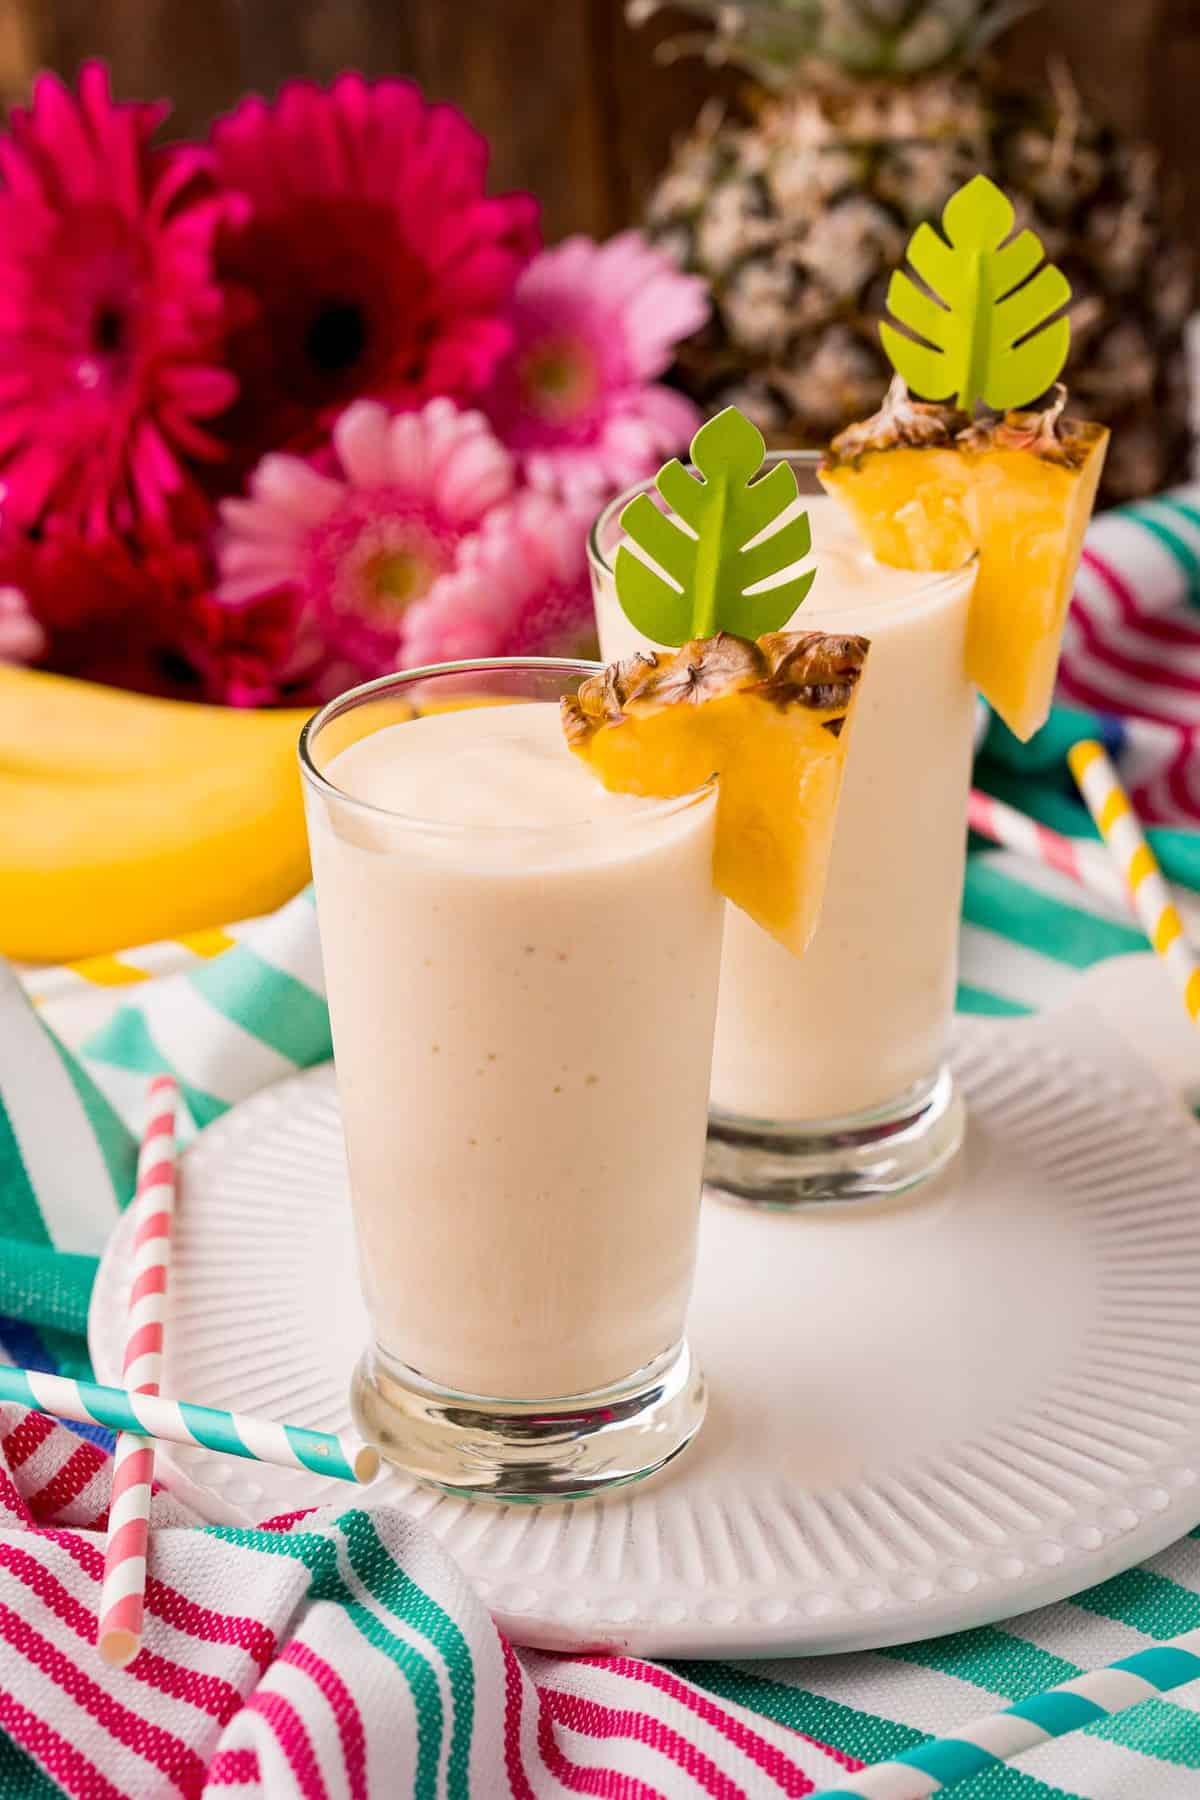 Two glasses with smoothies, against a bright colored background.